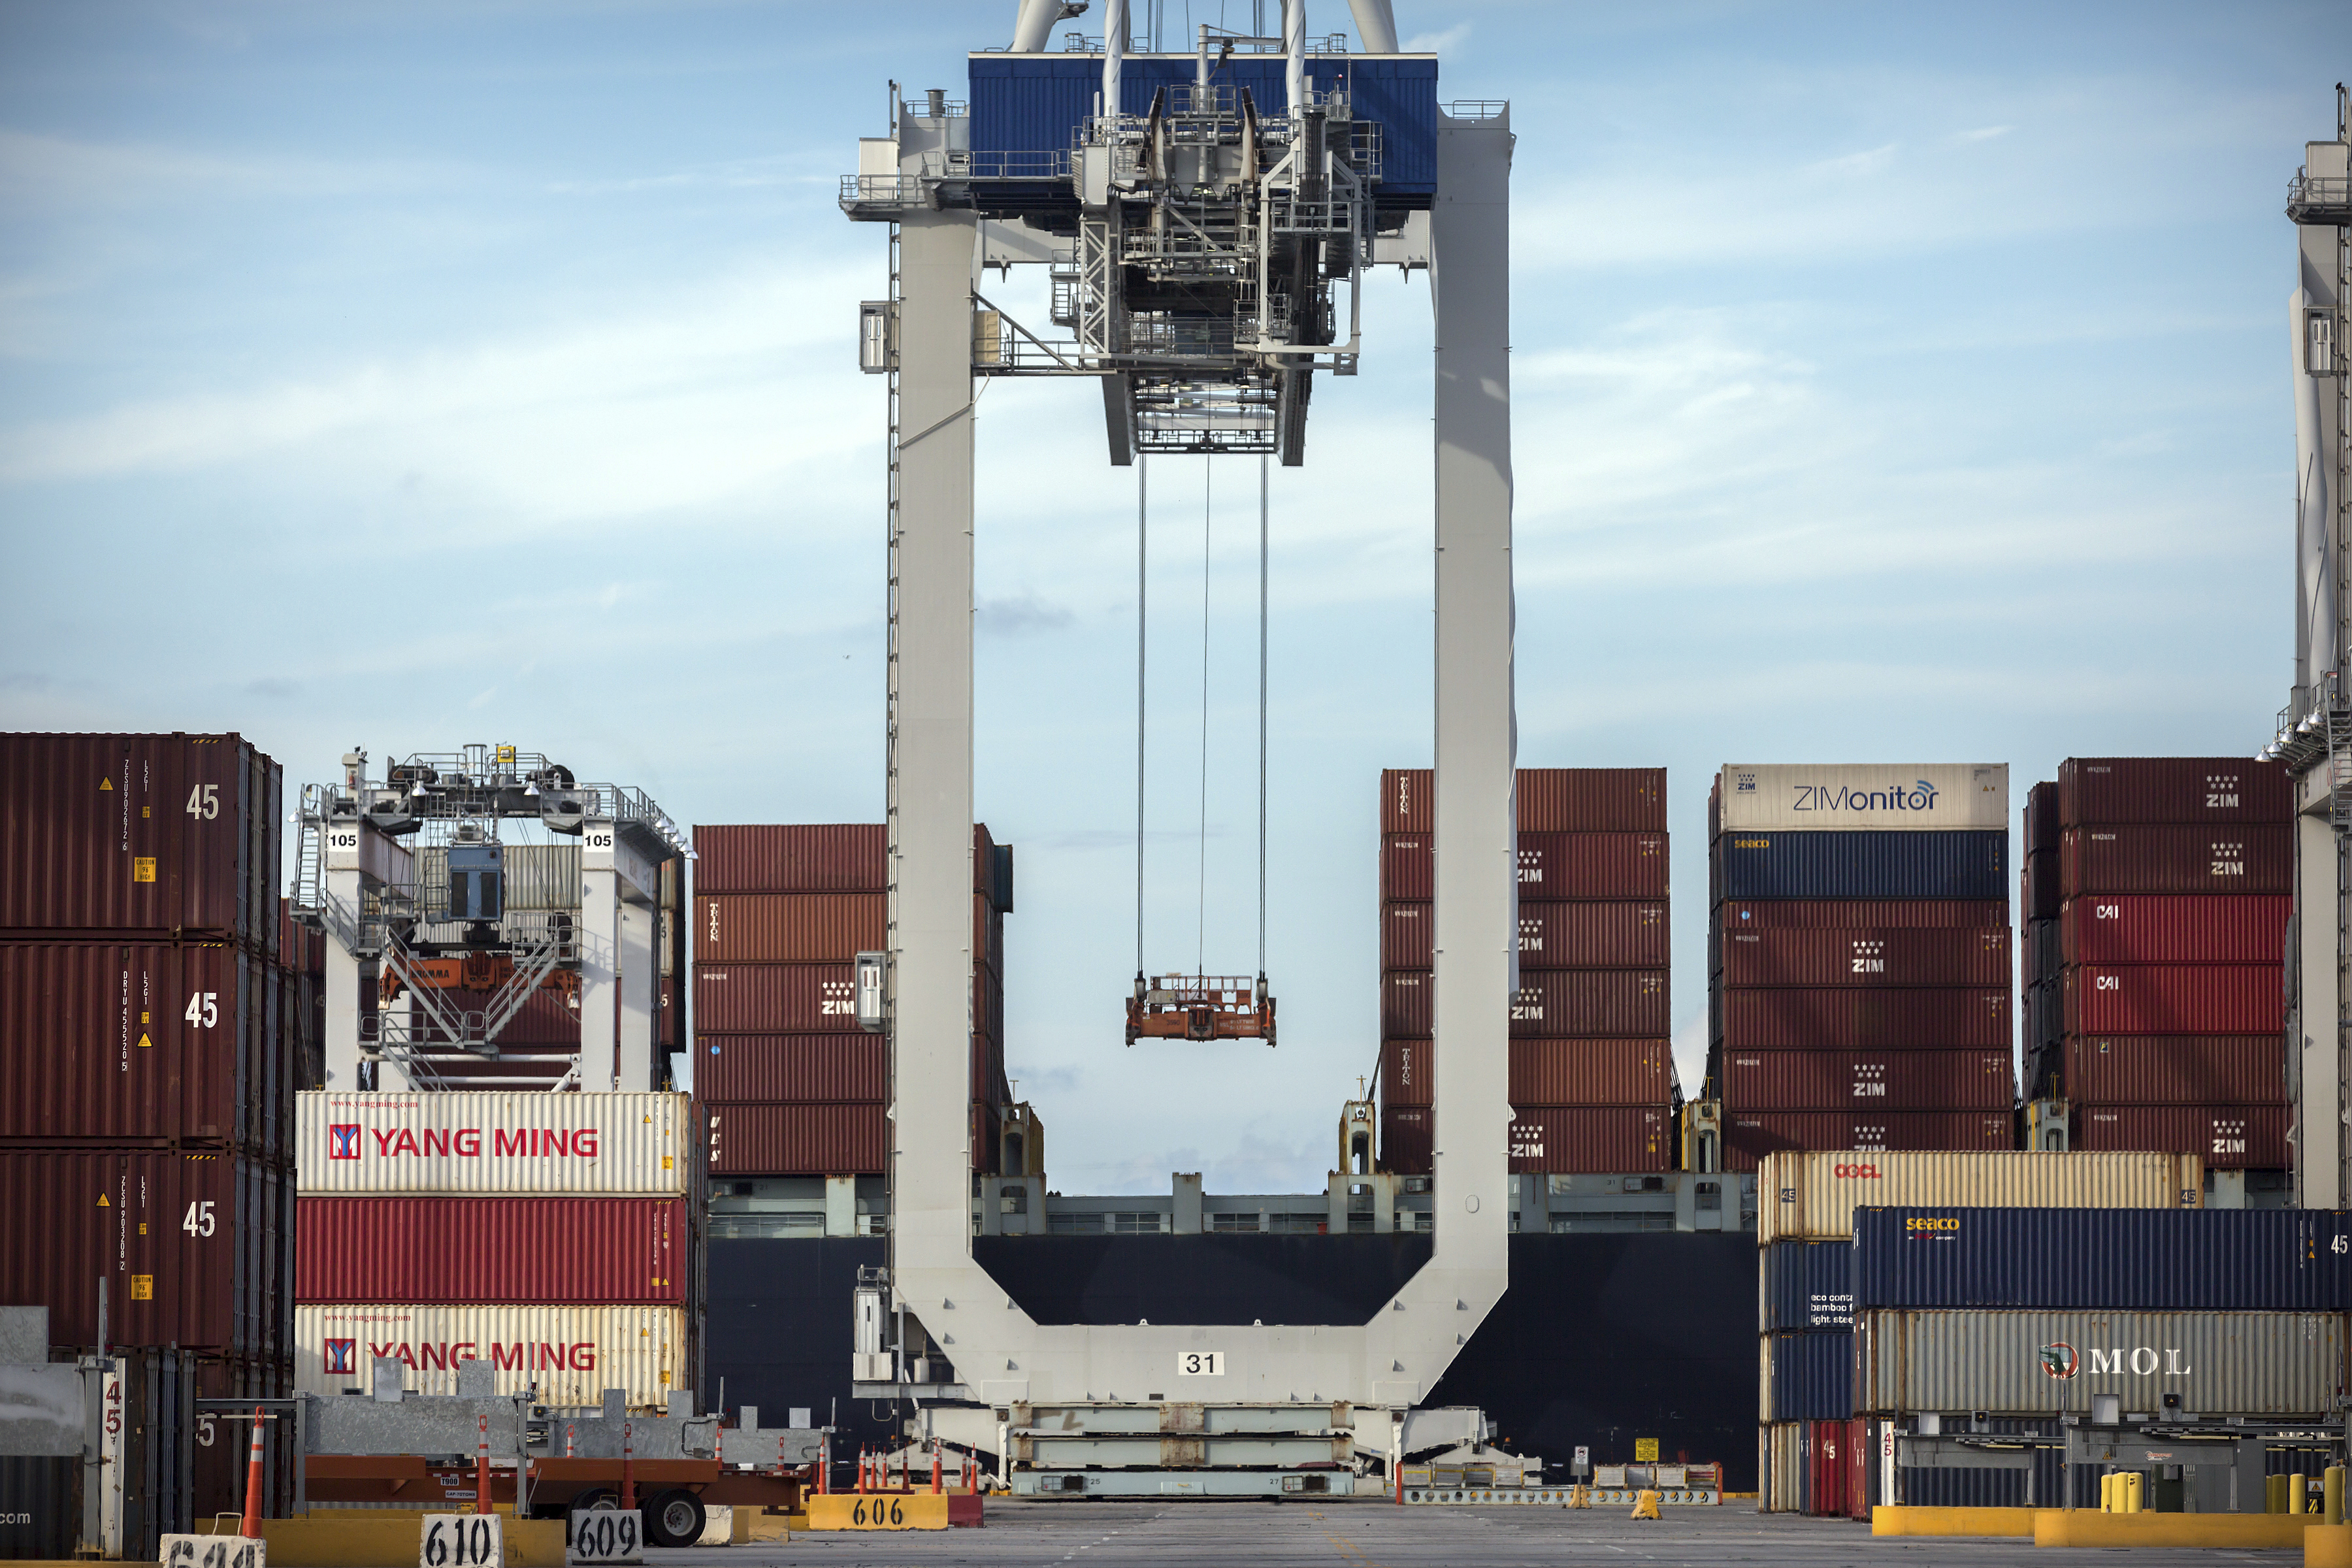 FILE - A ship-to-shore crane prepares to load a 40-foot shipping container onto a container ship at the Port of Savannah in Savannah, Georgia, July 5, 2018.